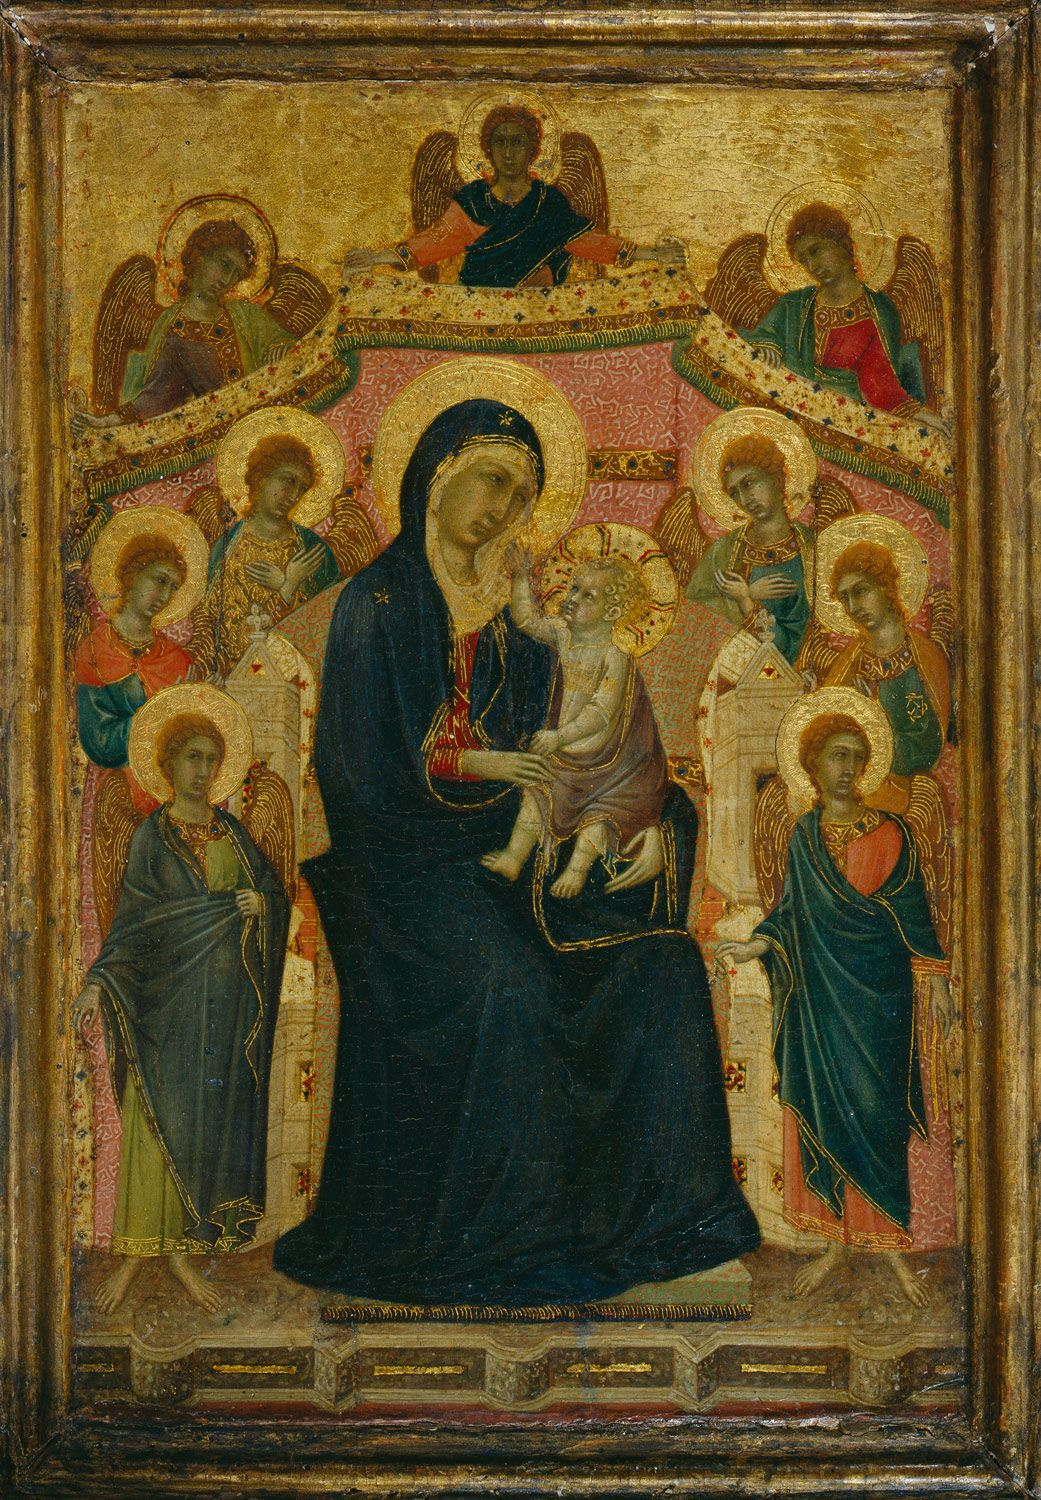 Arte Gotico Linea De Tiempo Madonna And Child With Nine Angels En 2019 Gótico Renacimiento